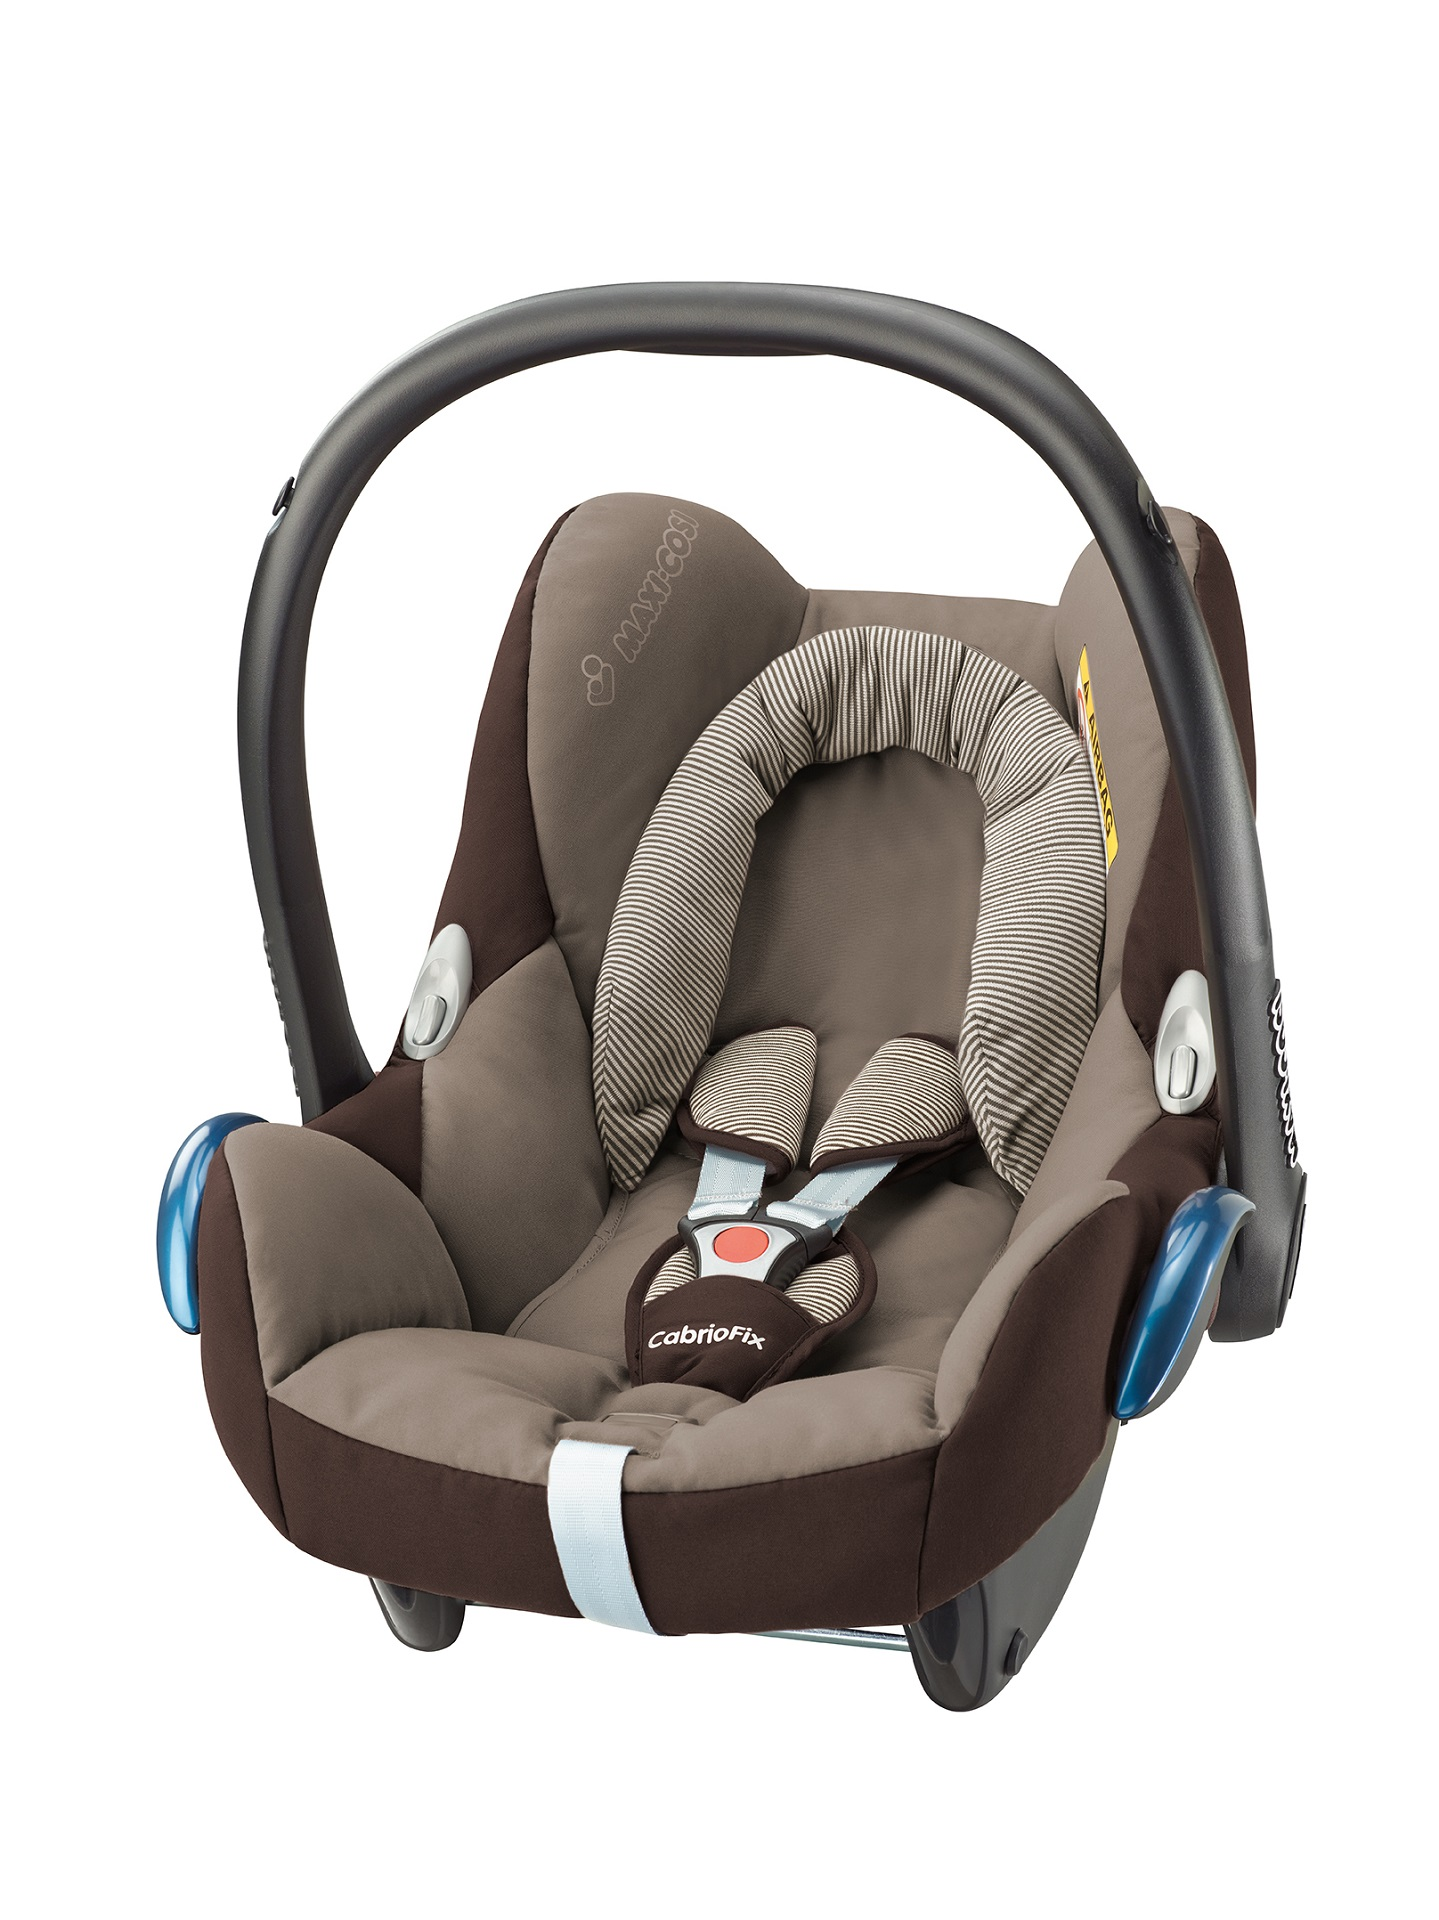 maxi cosi infant carrier cabriofix 2017 earth brown buy at kidsroom car seats. Black Bedroom Furniture Sets. Home Design Ideas